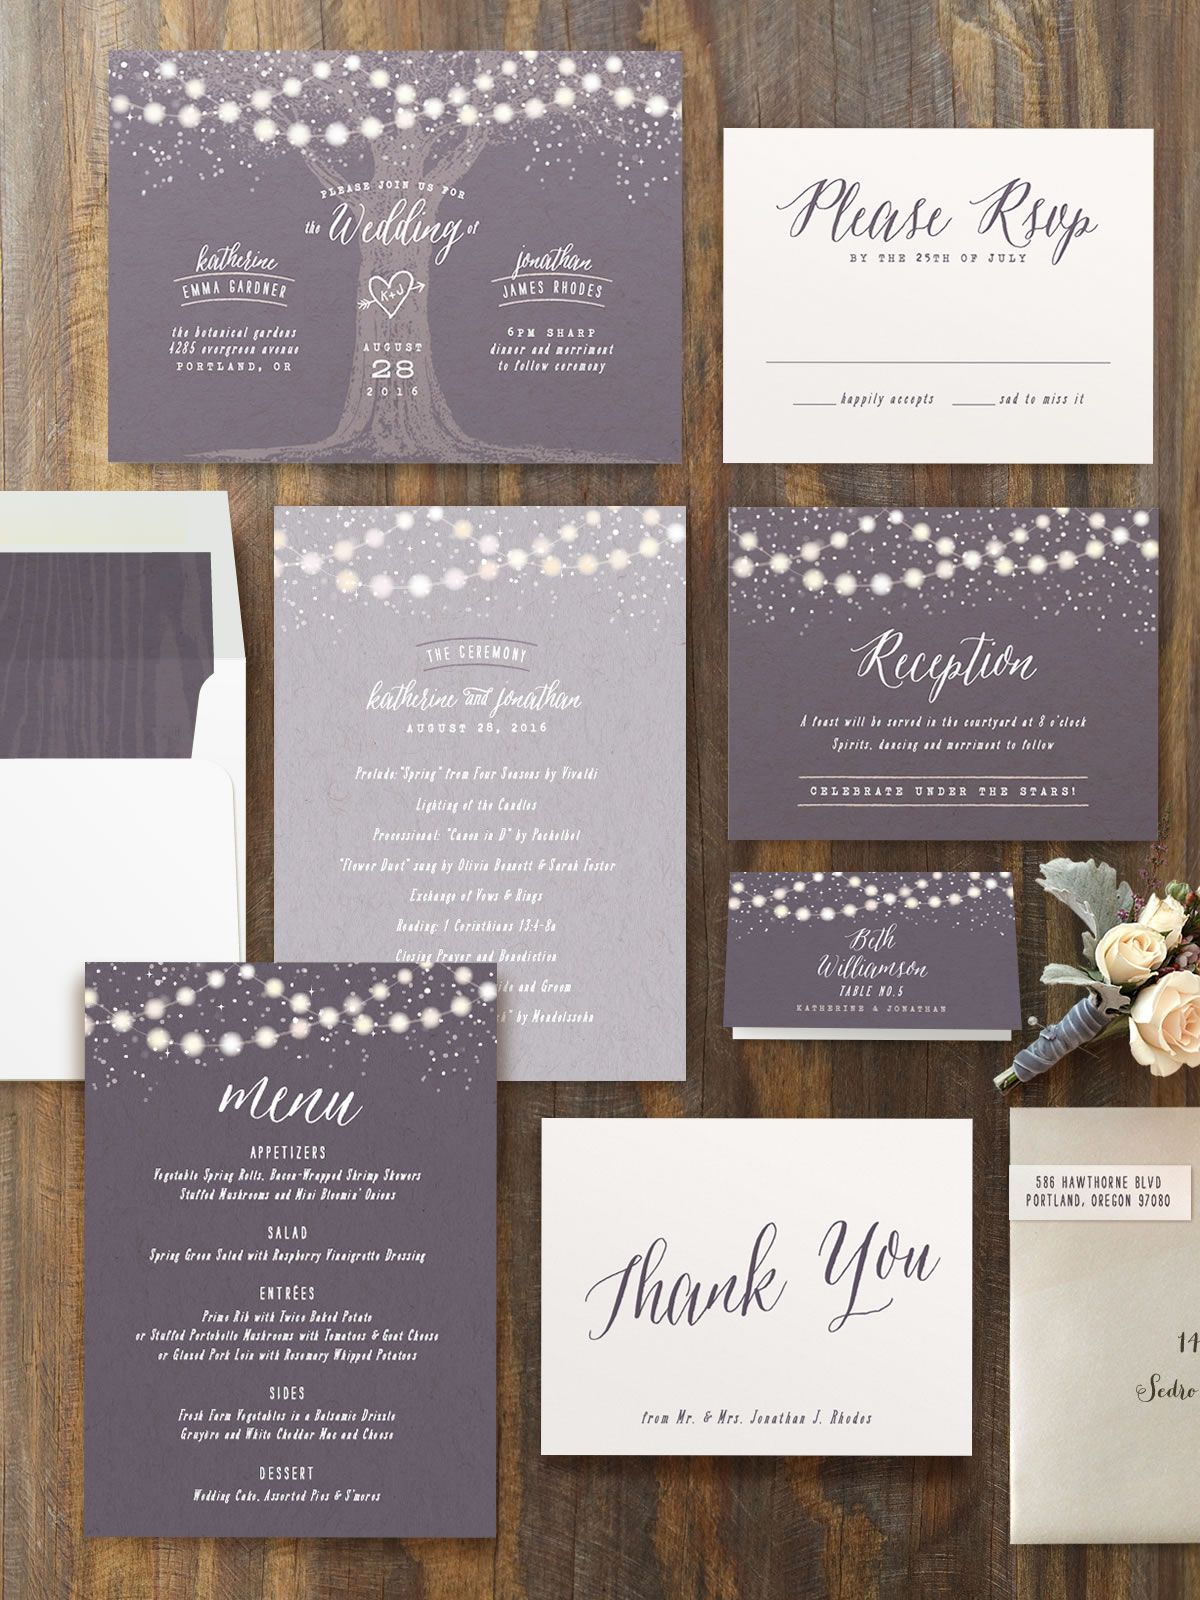 minted wedding invitations Garden Lights Customizable Wedding Invitations in Purple by Hooray Creative